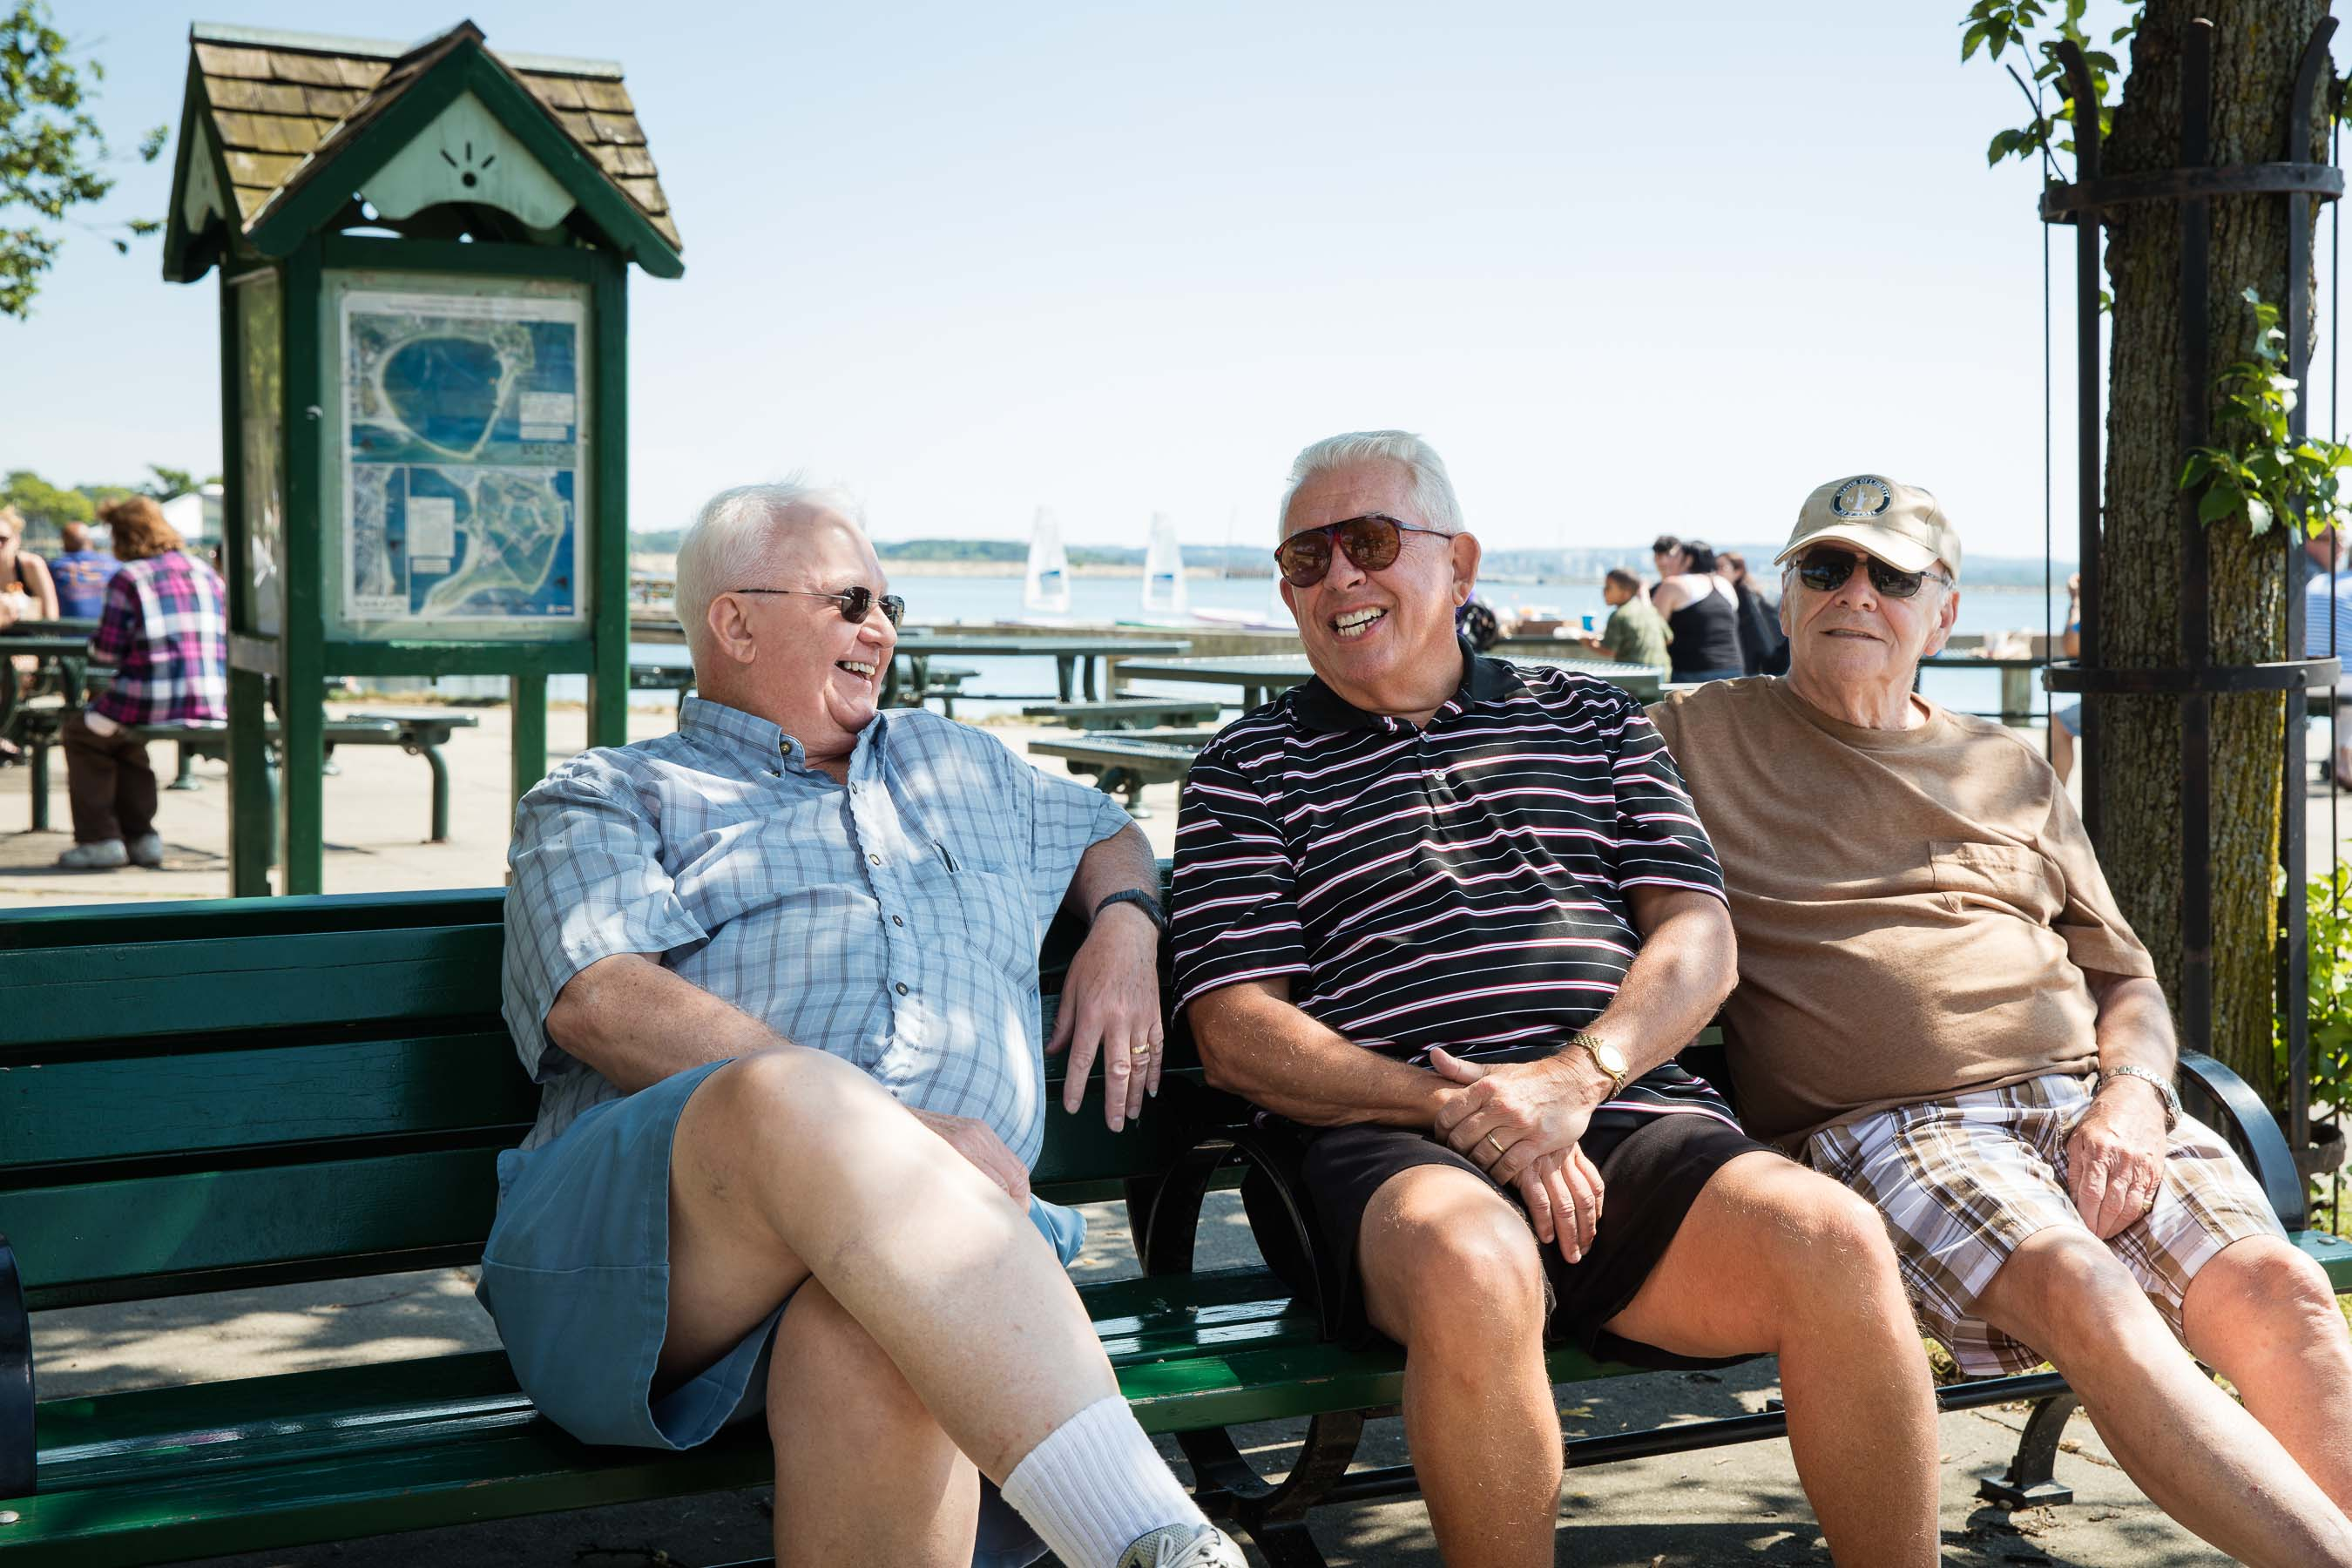 Three older men enjoying a laugh at a park